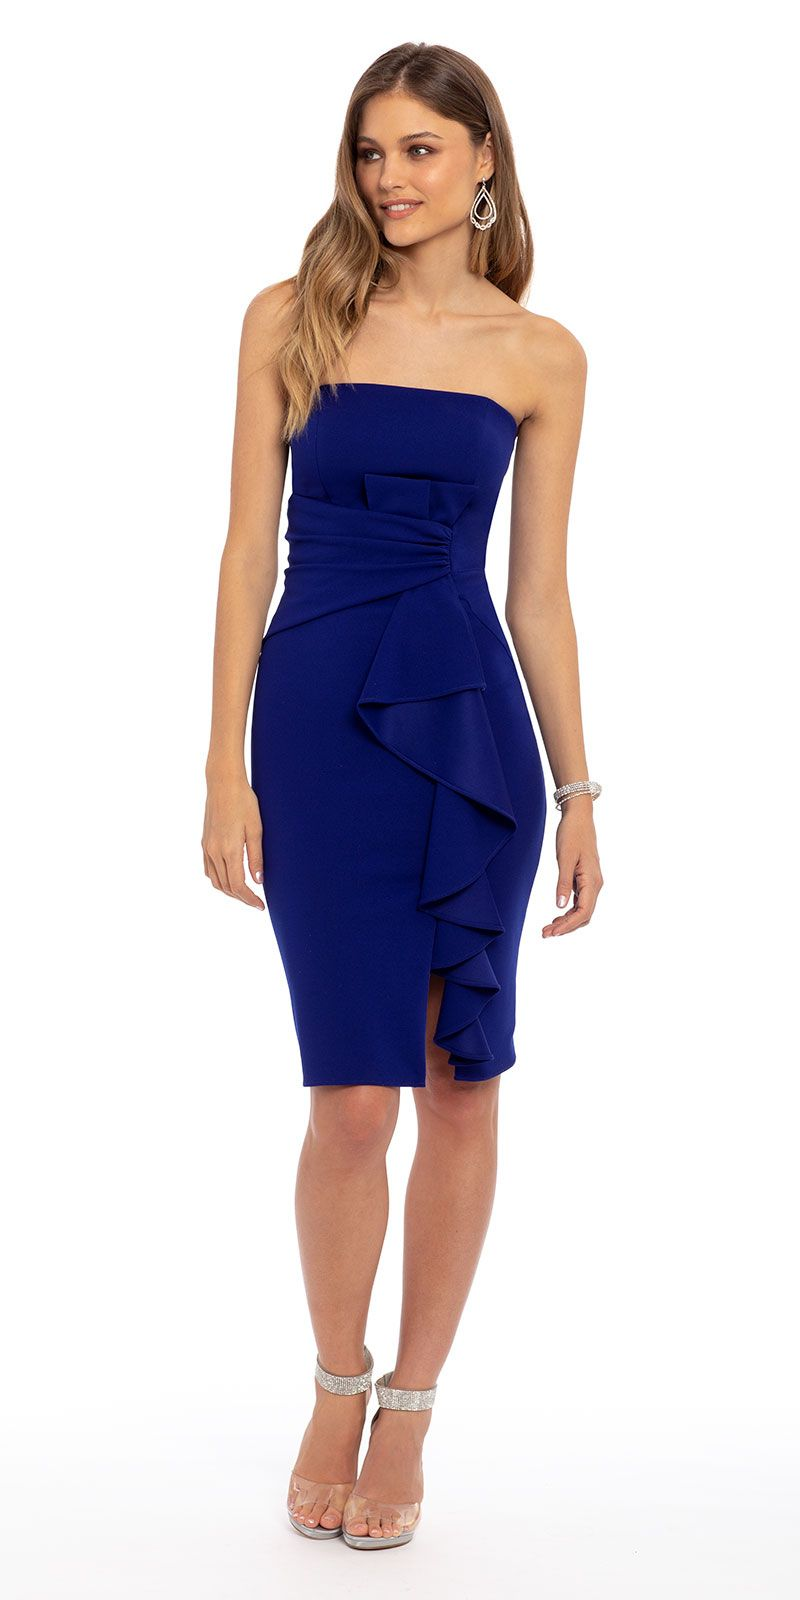 Strapless Crepe Ruched Side Ruffle Dress Knee Length Cocktail Dress Guest Dresses Wedding Guest Dress [ 1600 x 800 Pixel ]